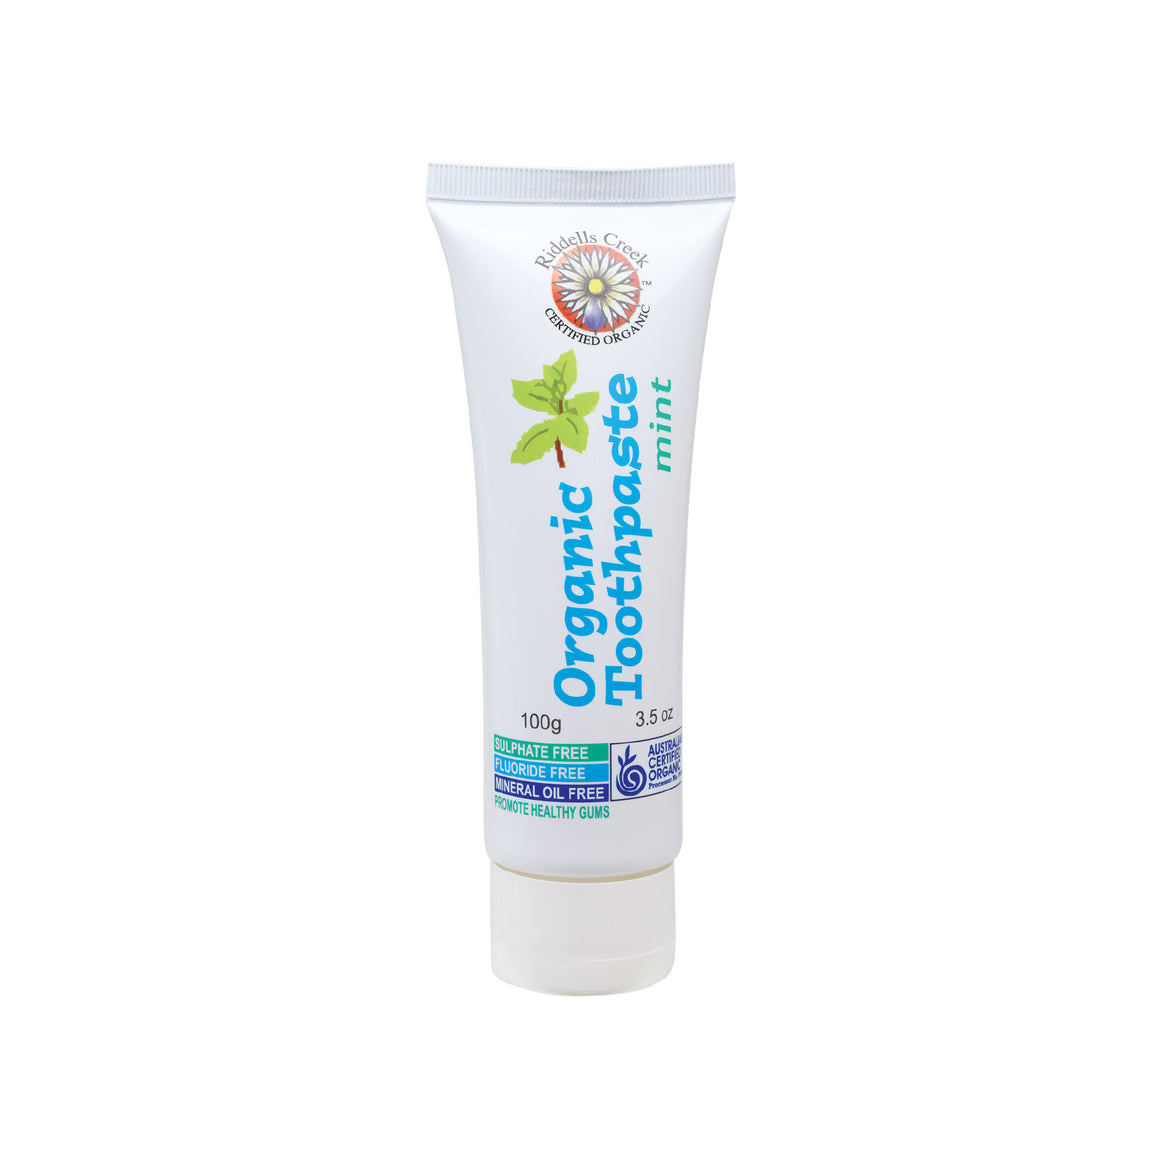 Riddells Creek Toothpaste Mint - 100g